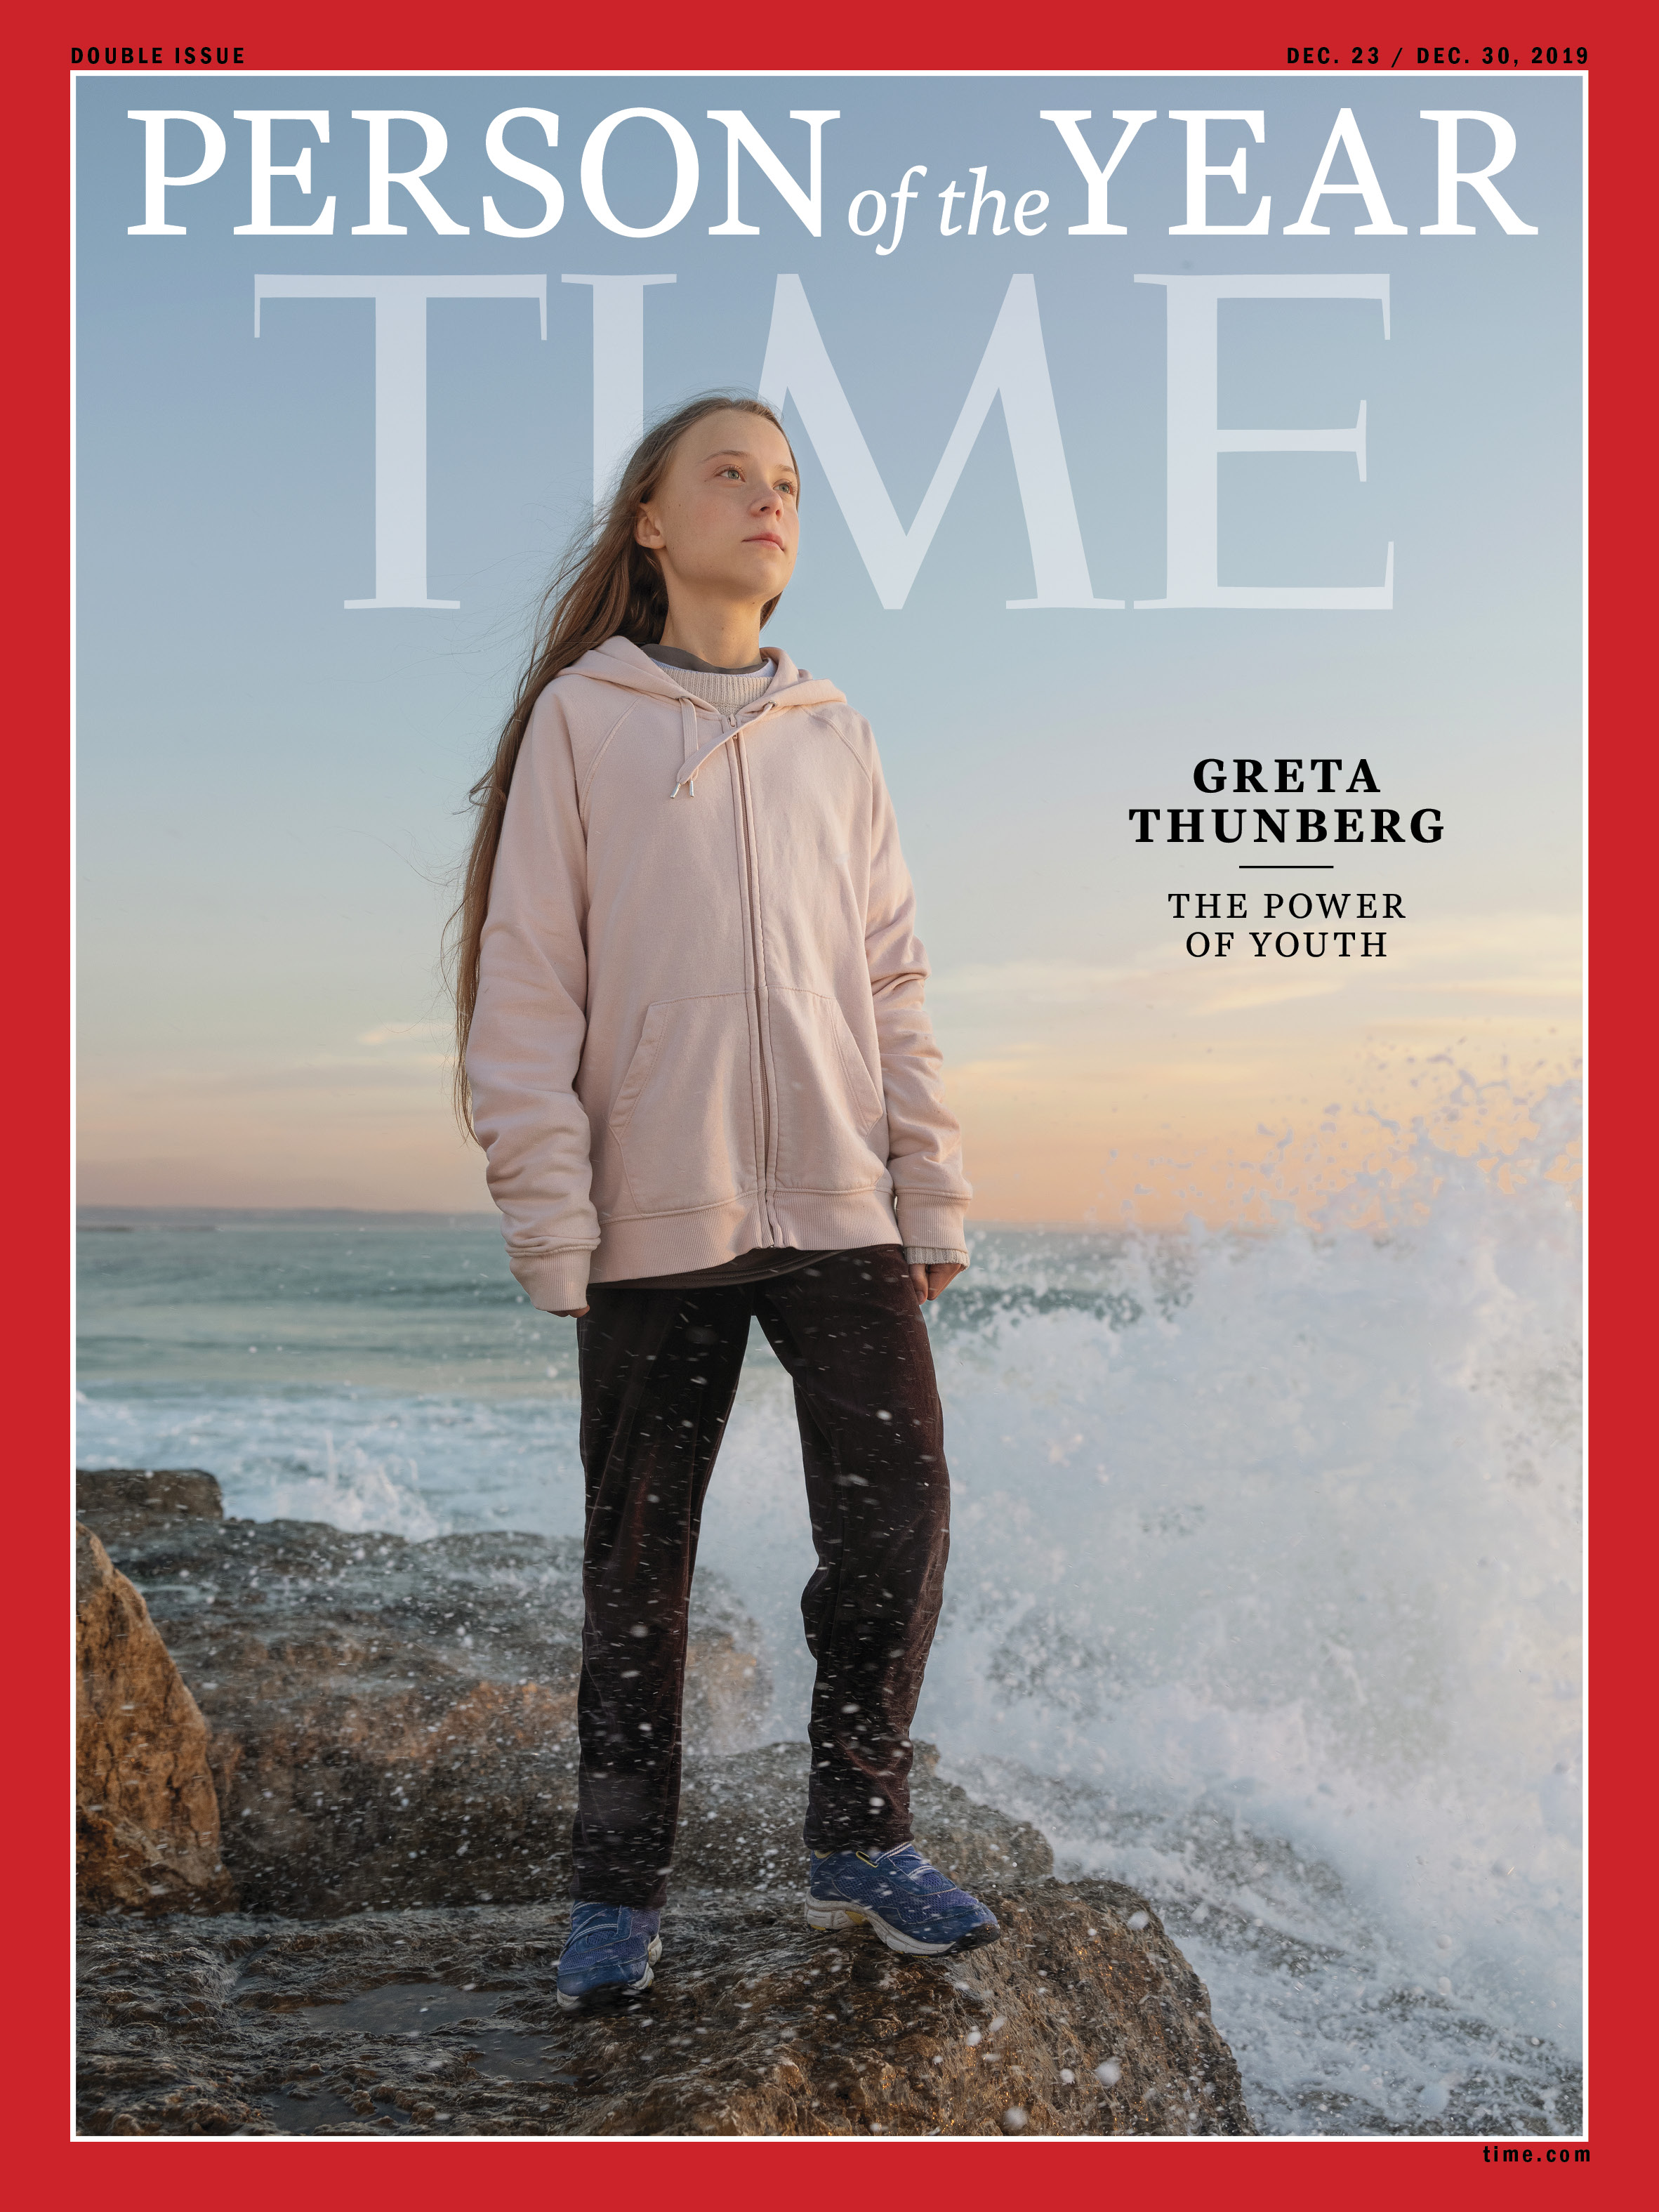 Greta Thuberg is TIME's 2019 'Person of the Year'